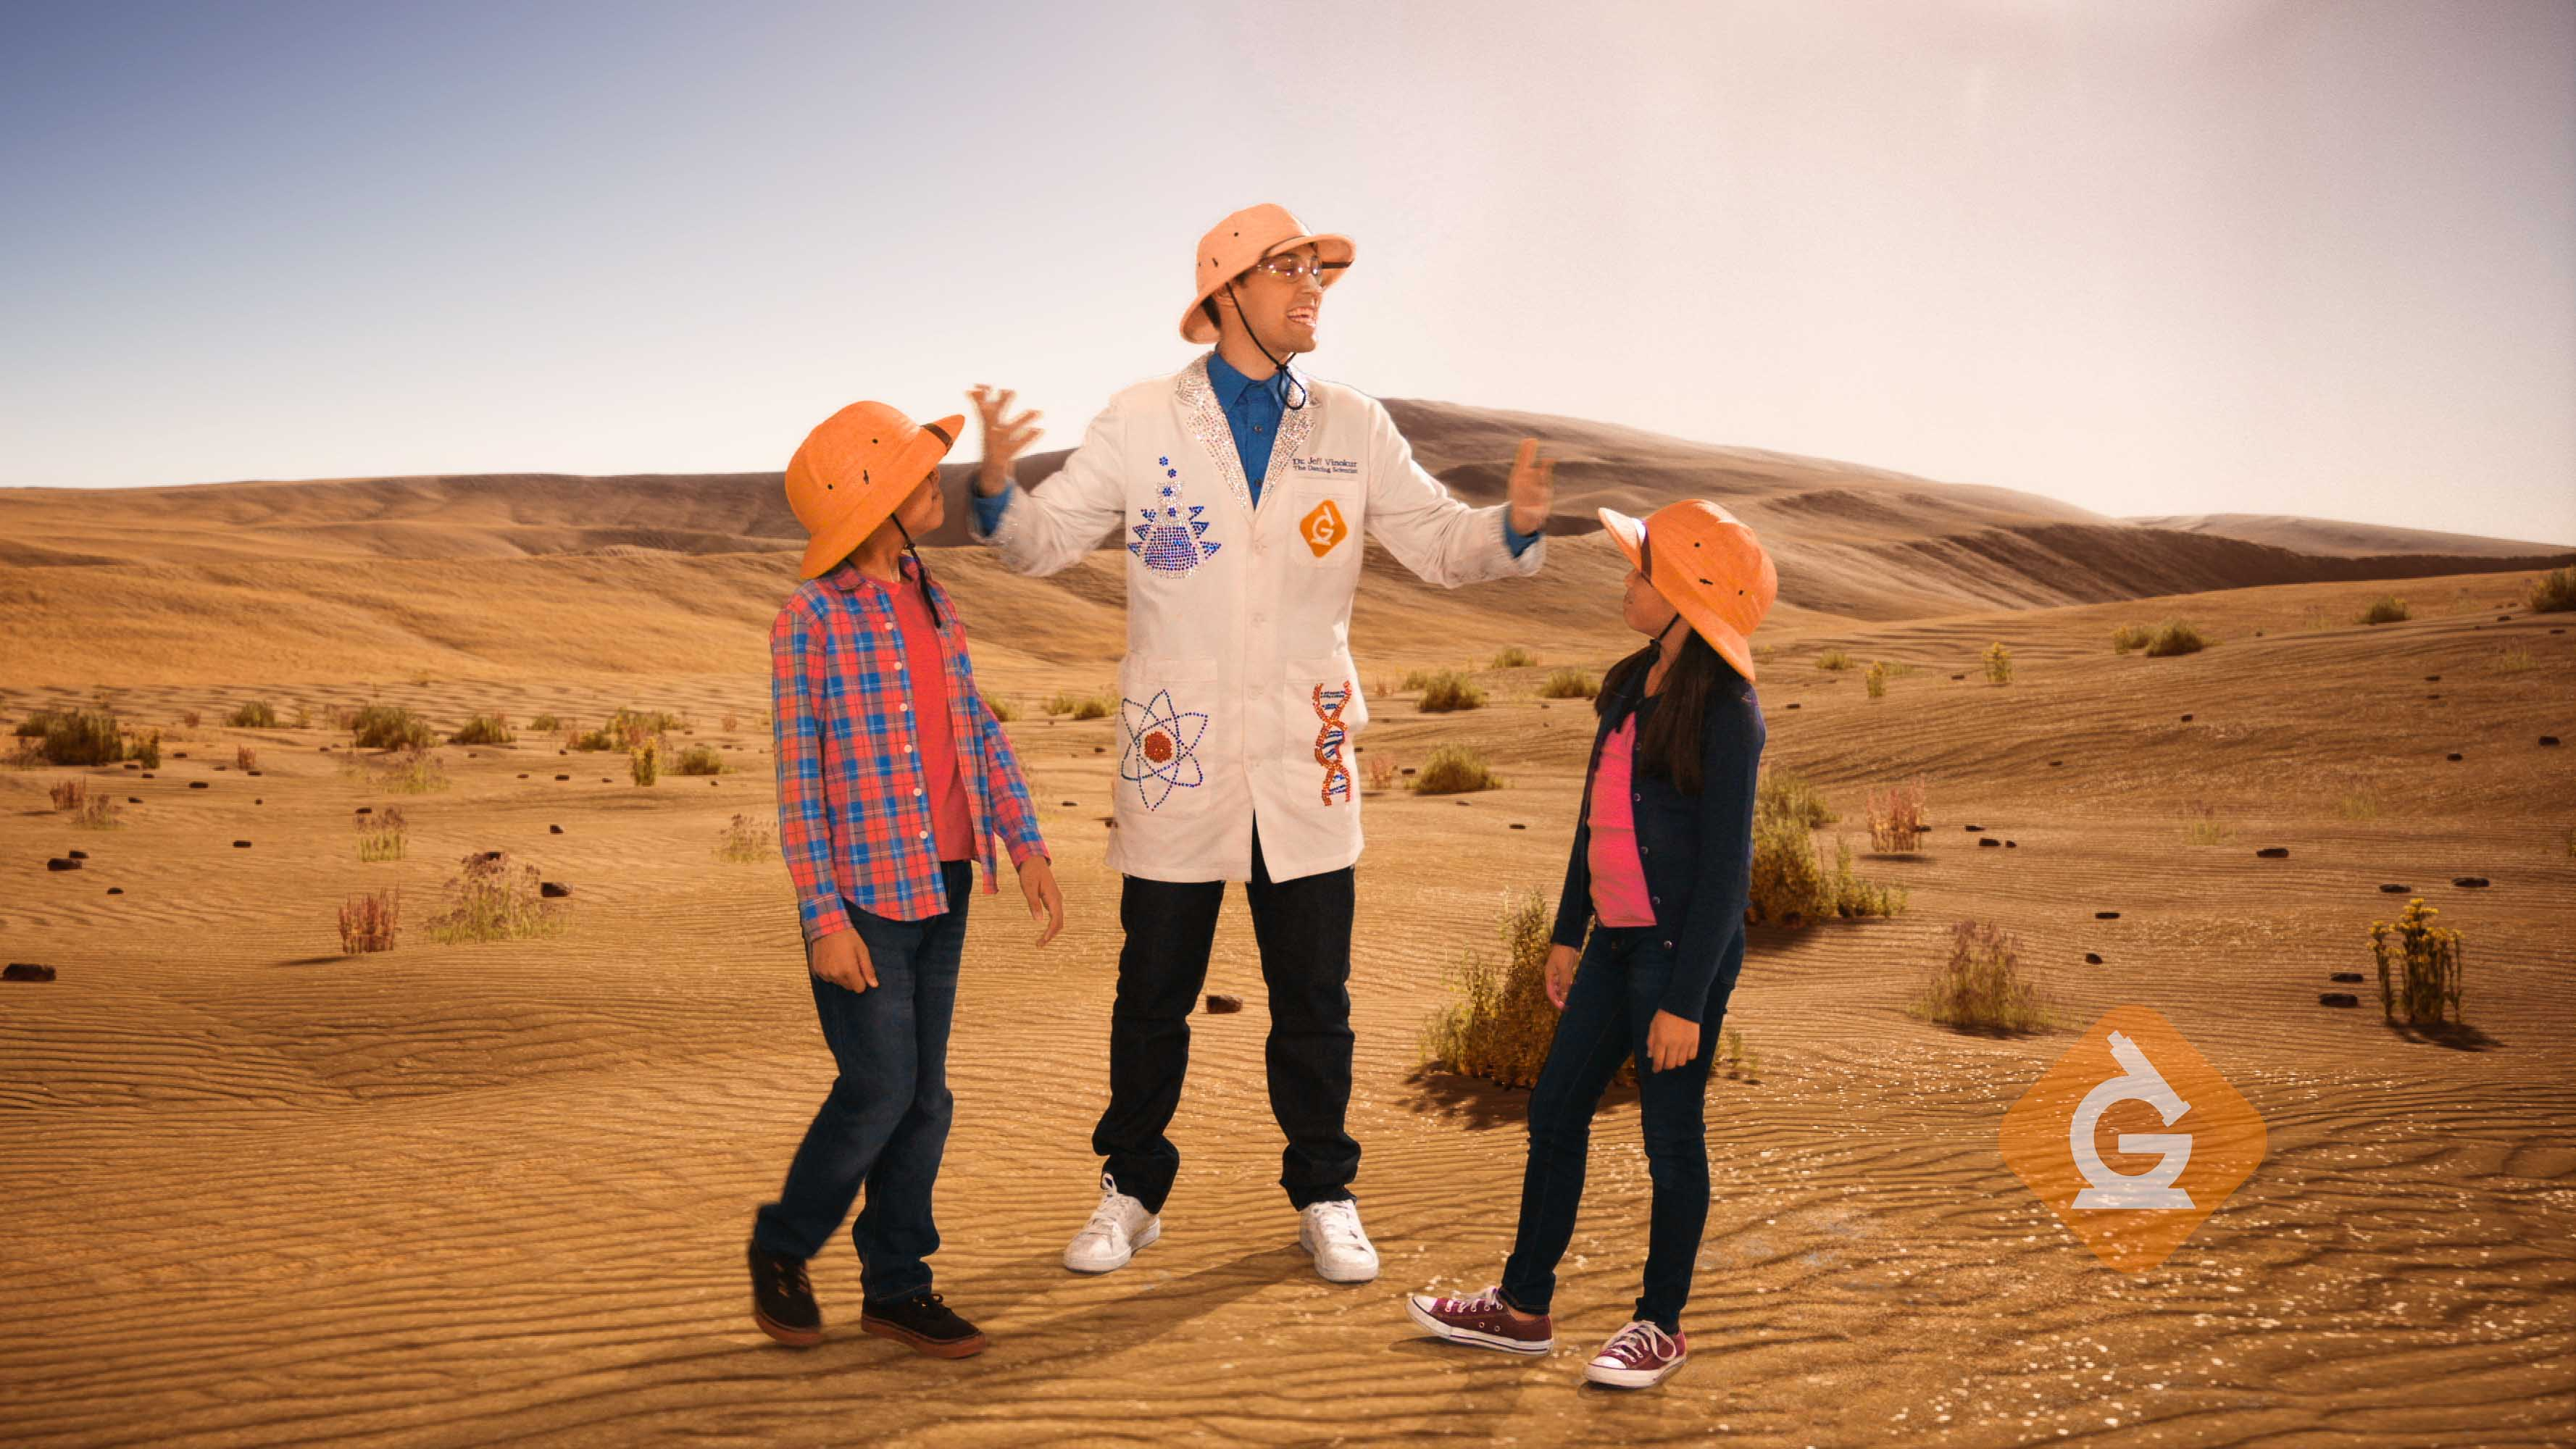 scientist explains sunlight to kids in the desert